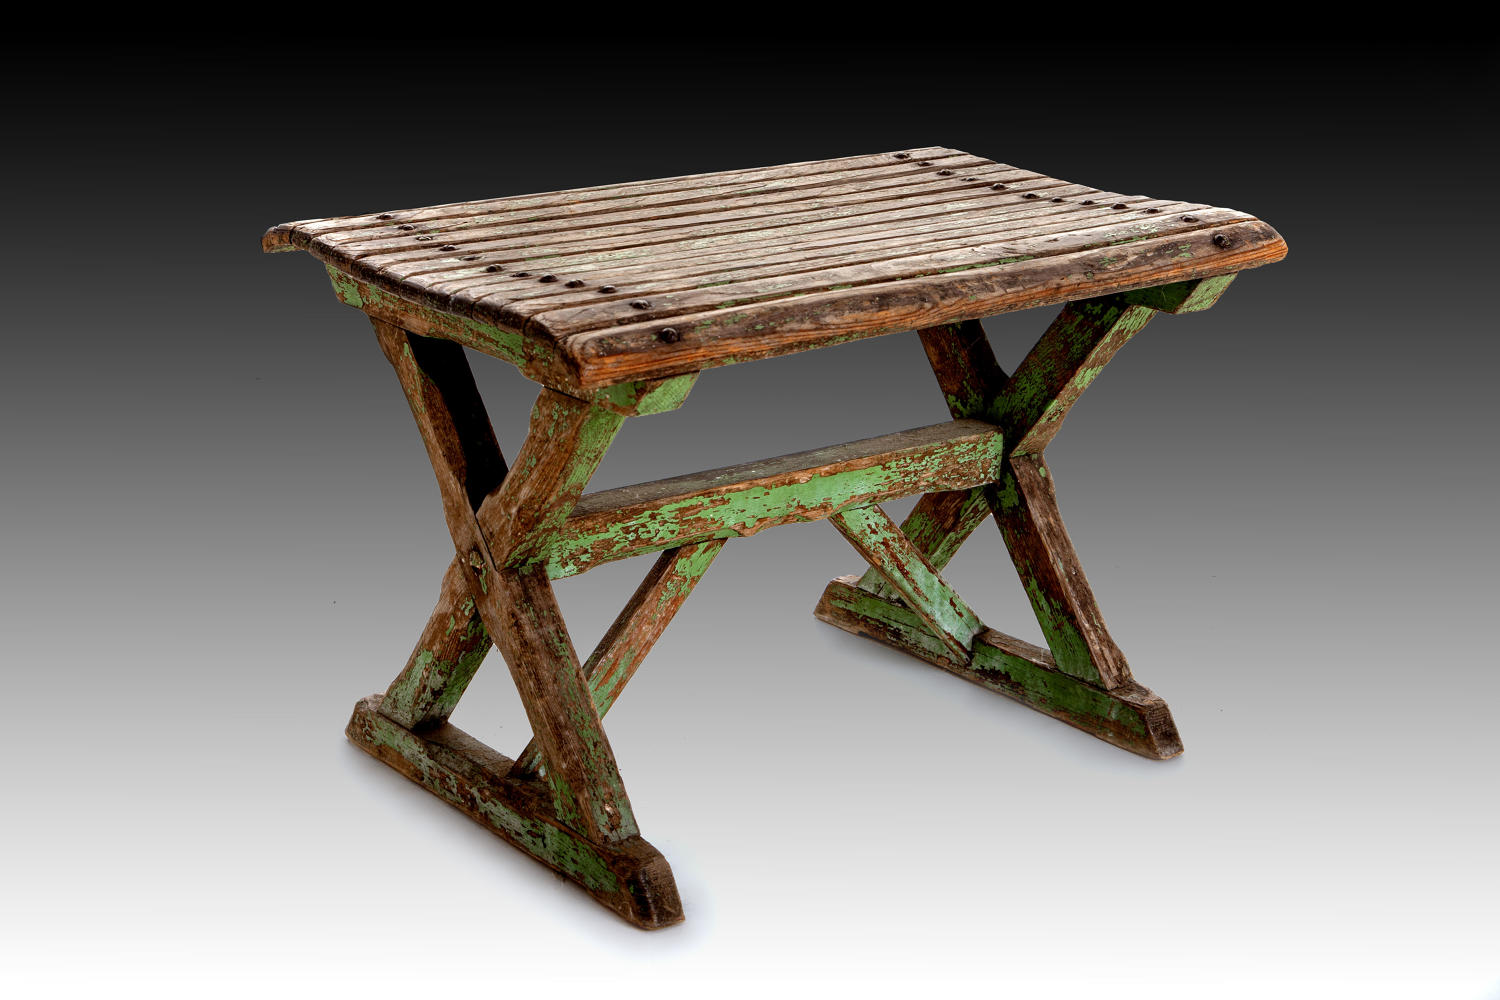 An early 20th century Artists seat c.1900